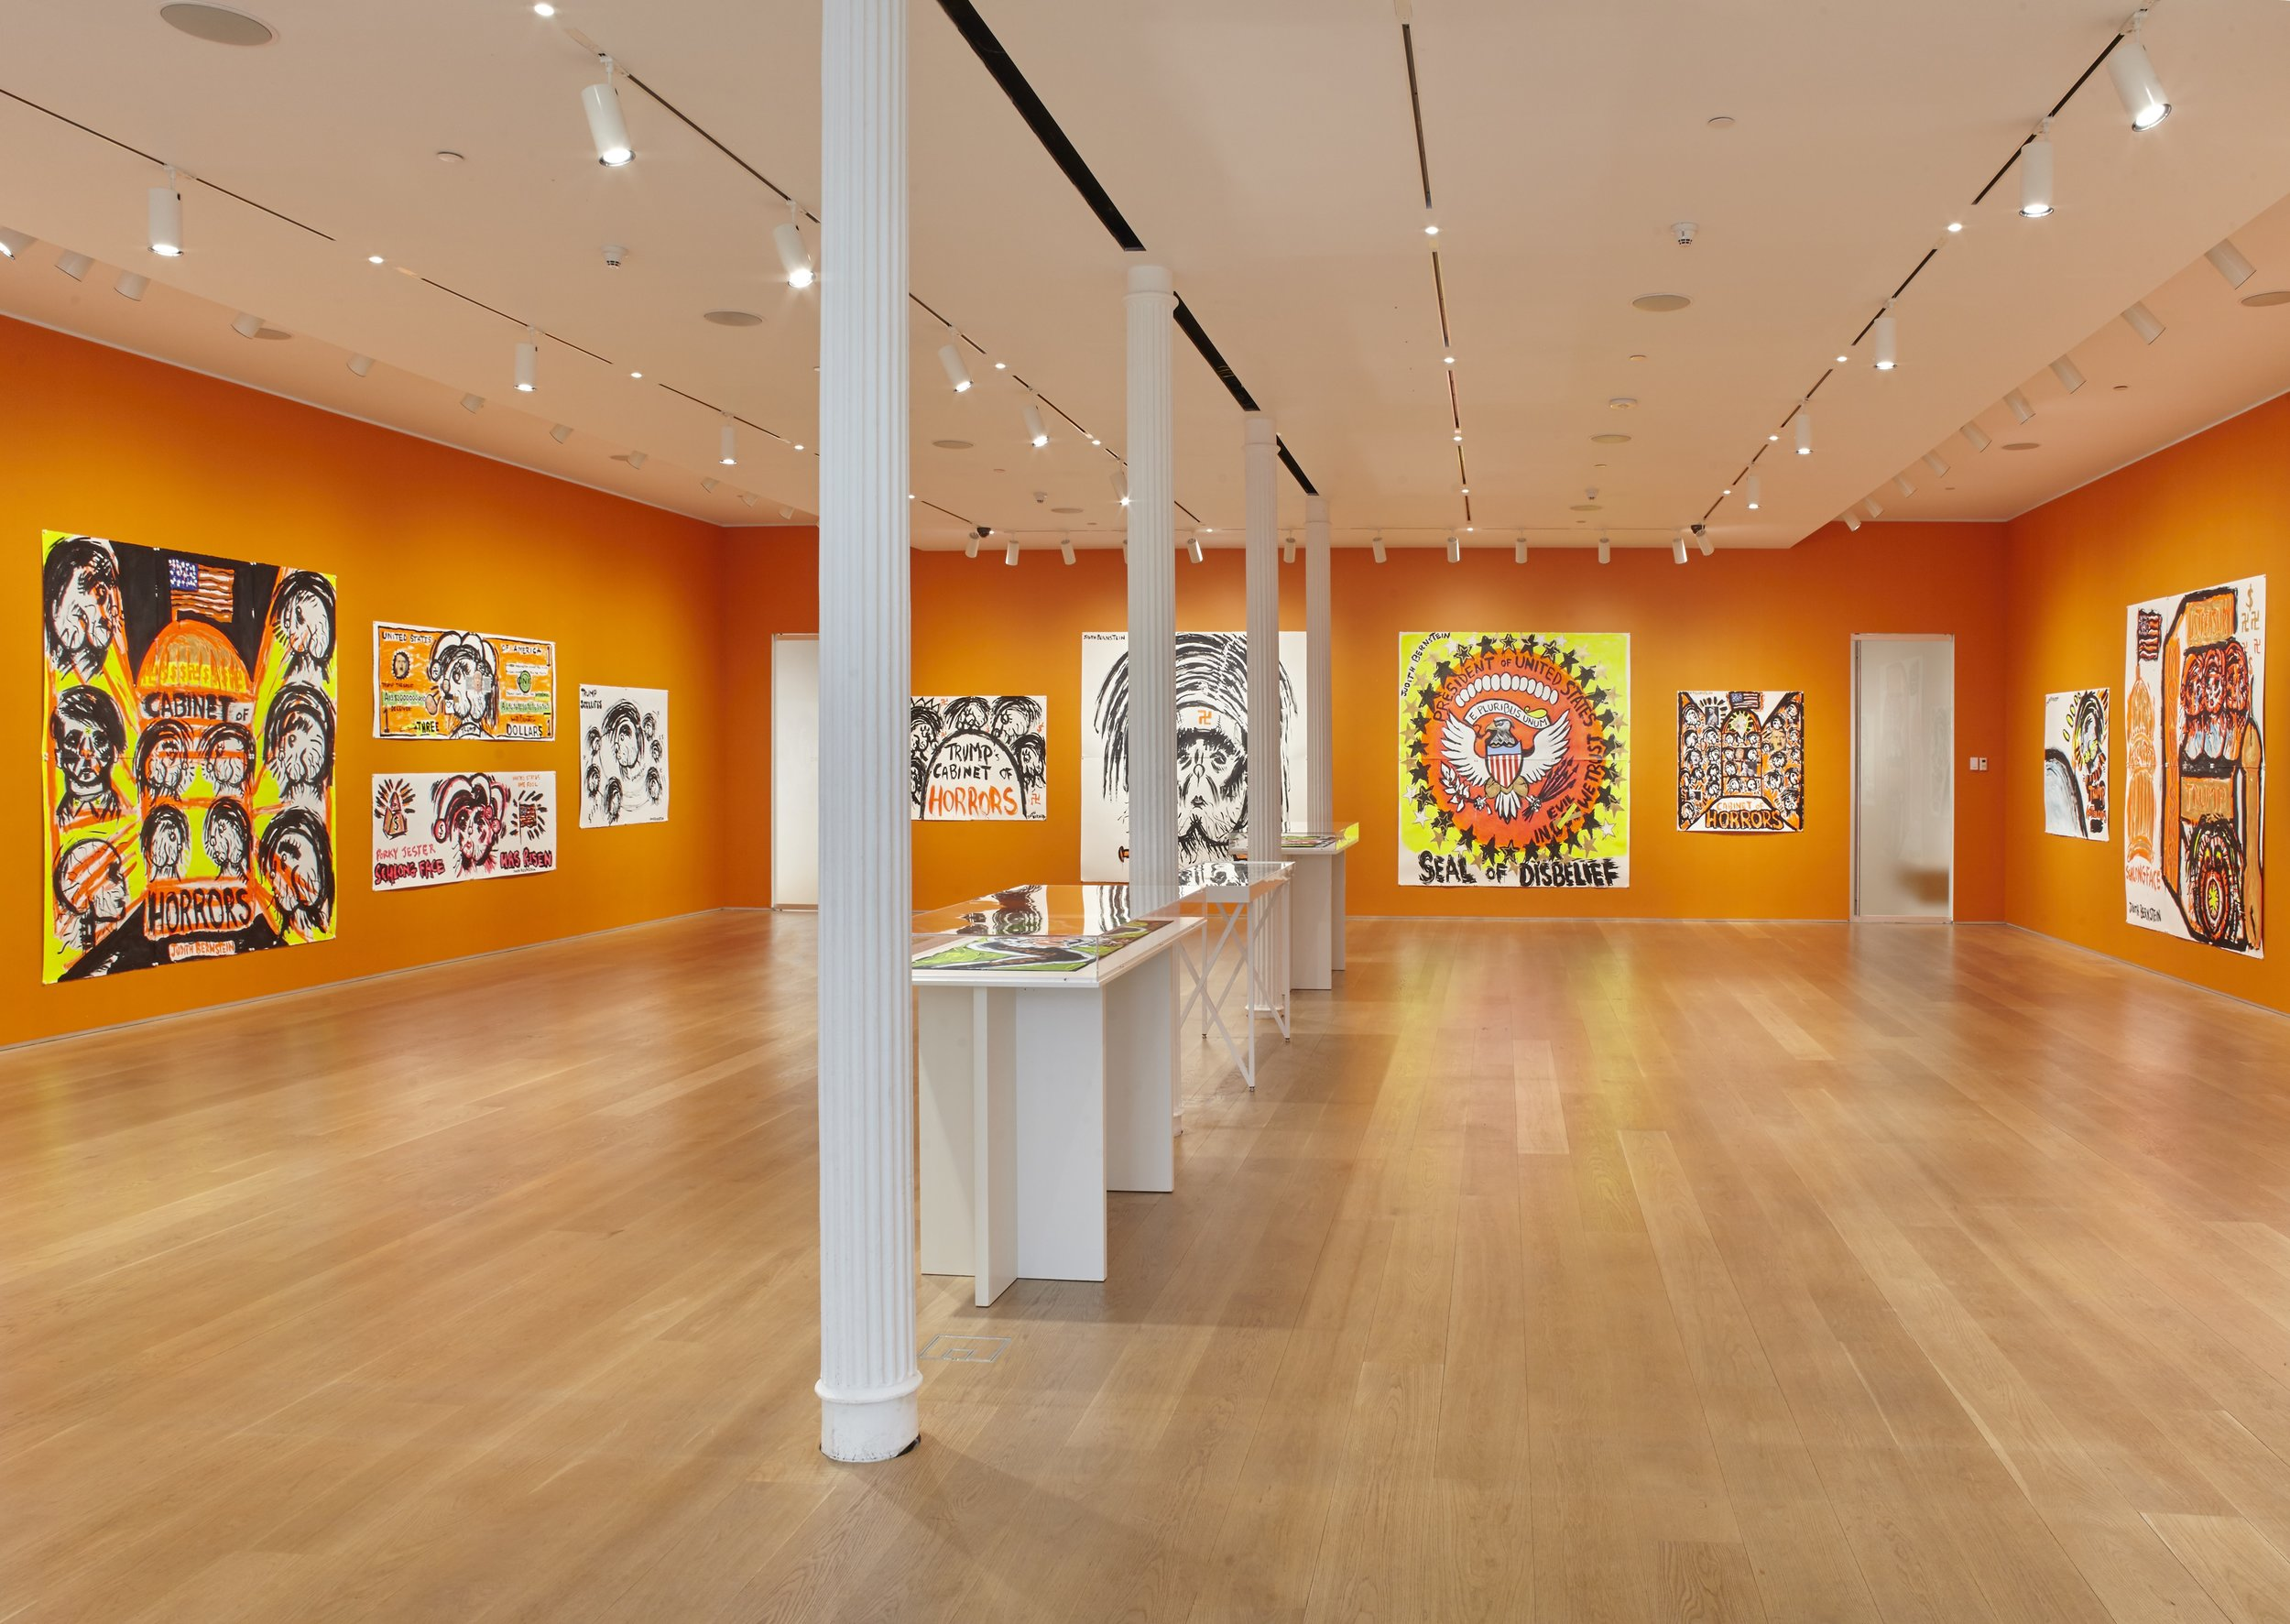 Installation view. Courtesy of The Drawing Center. Photos by Mark Parsekian.